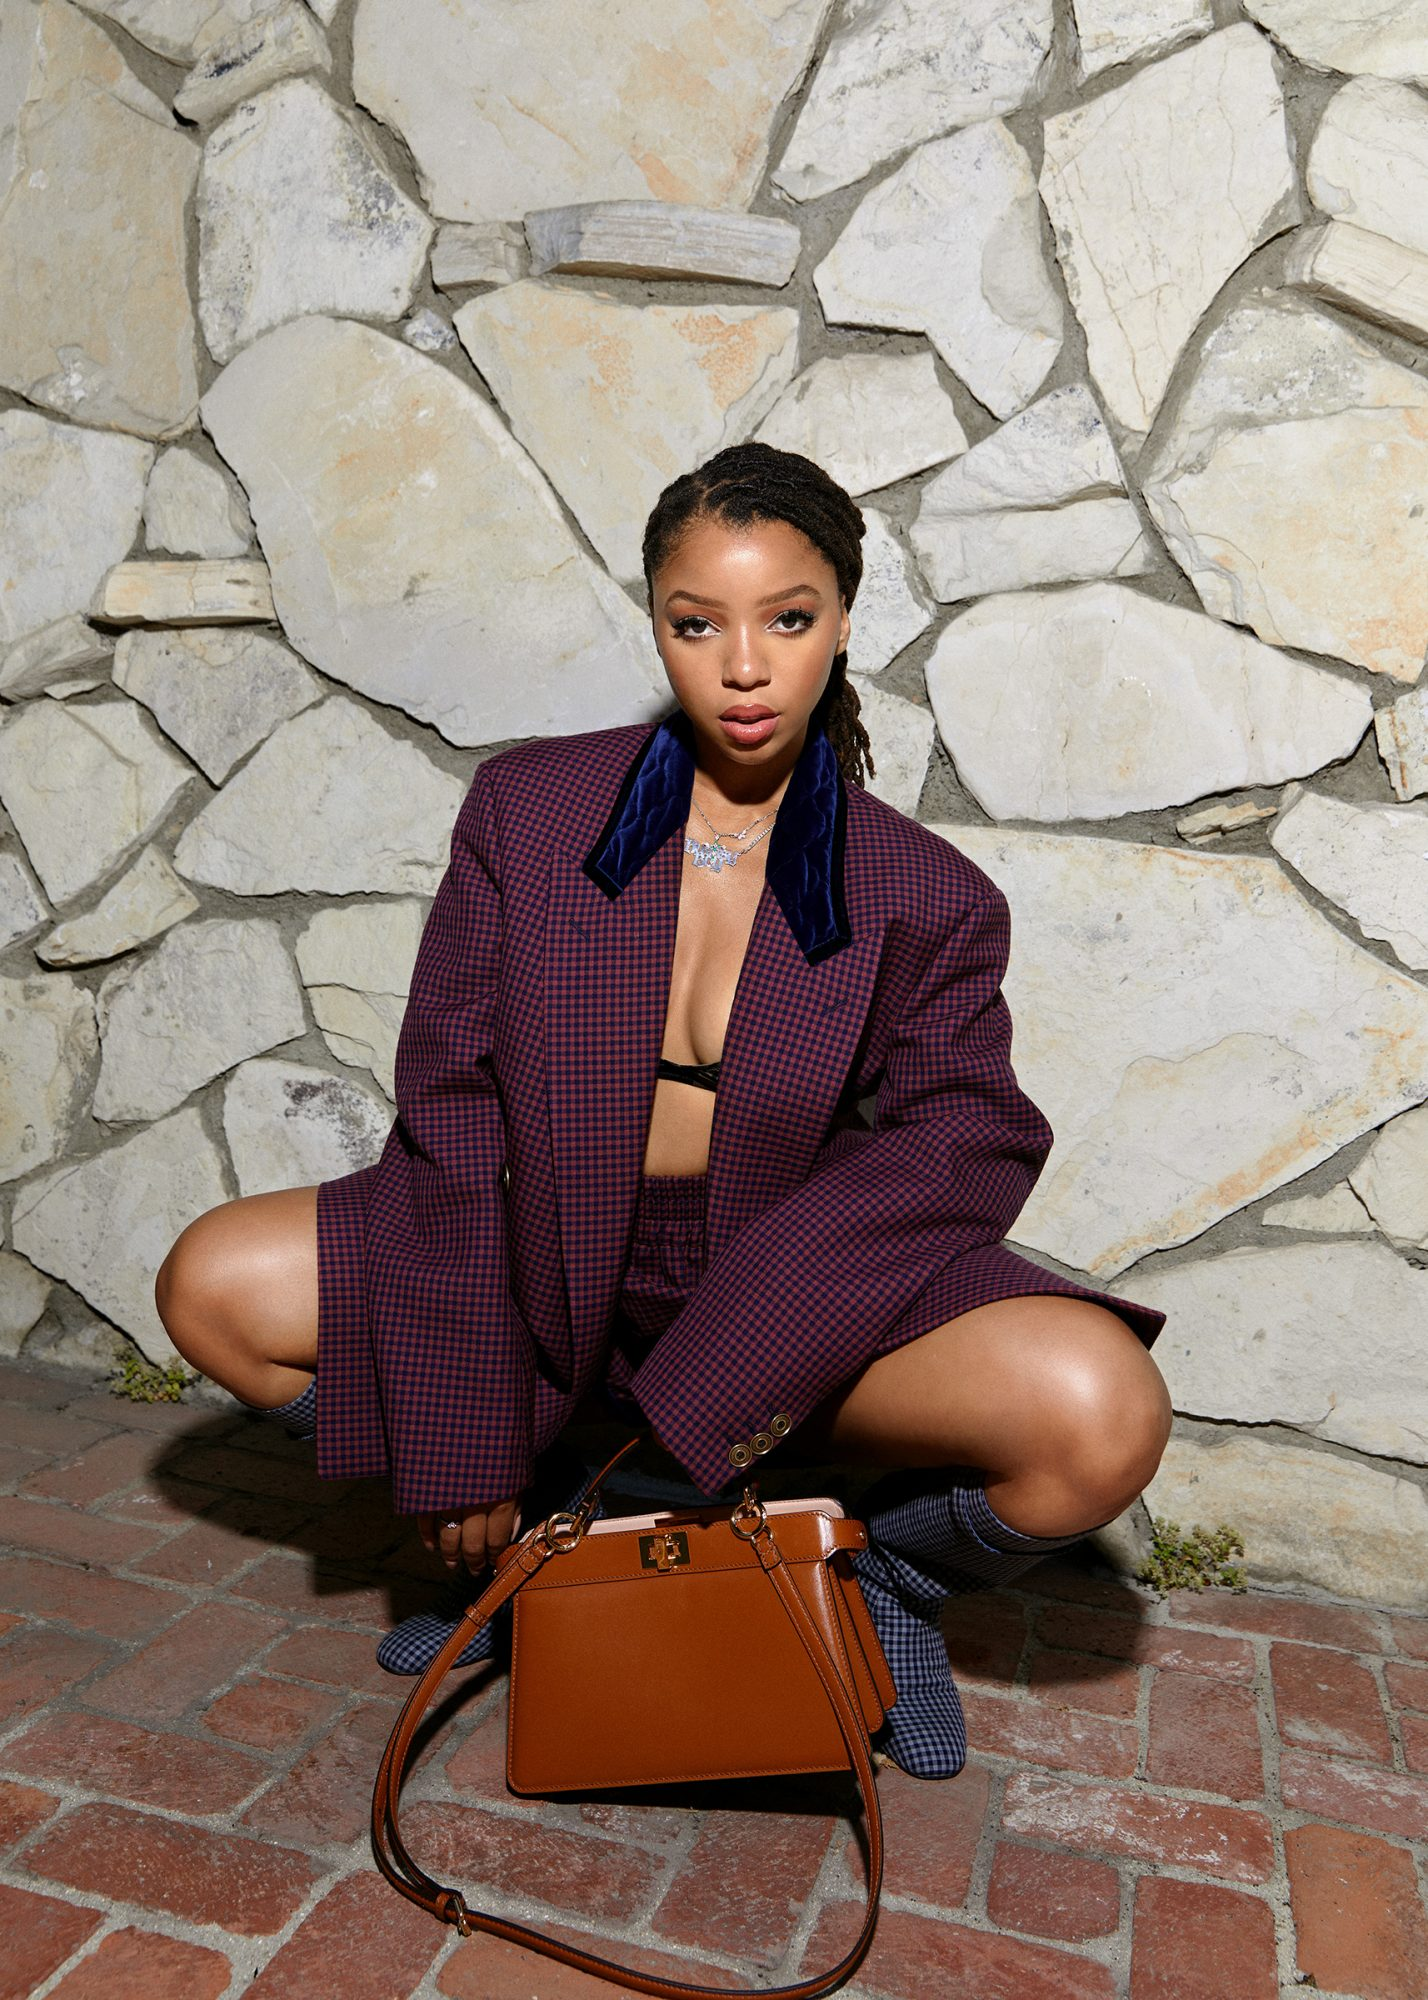 FENDI Launches New #MeAndMyPeekaboo Episode Created by and Starring Chloe x Halle